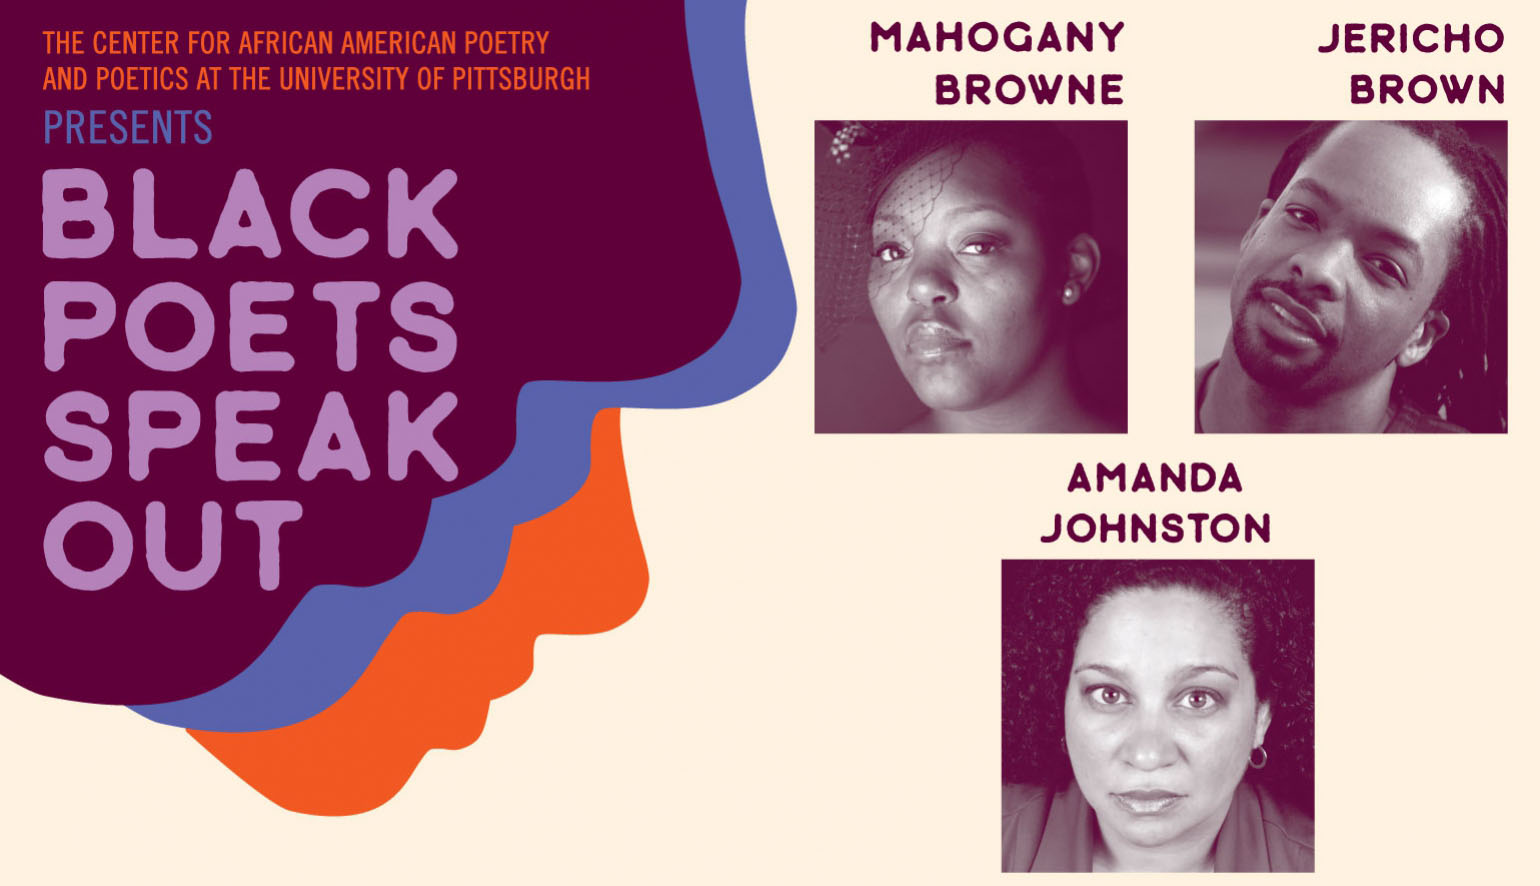 black-poets-speak-out-poster